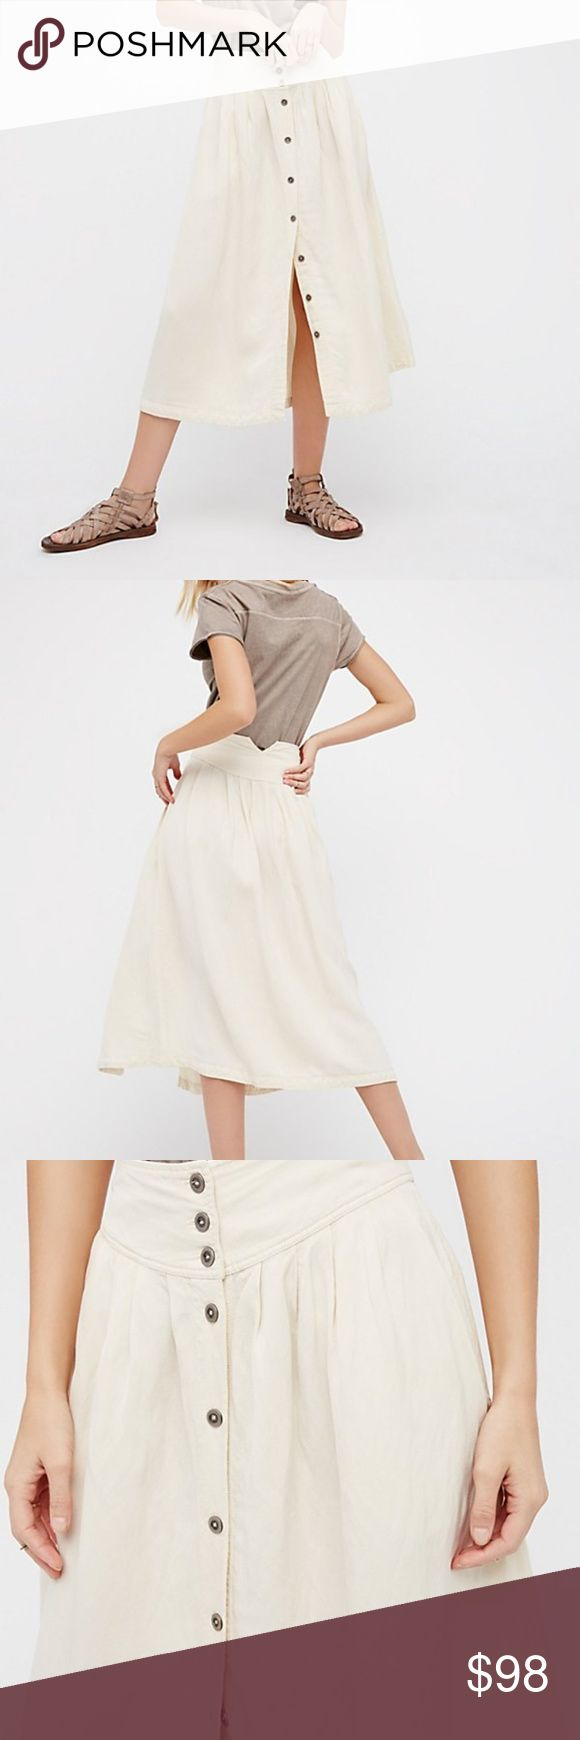 Free People Button Down Skirt Almond 10 FP Midi button down skirt. size 10 in almond. A nice, heavier linen blend material-almost canvas like that flows nicely and is not sheer at all. Worn once, No Flaws, tts - will add real pics today! Free People Skirts Midi